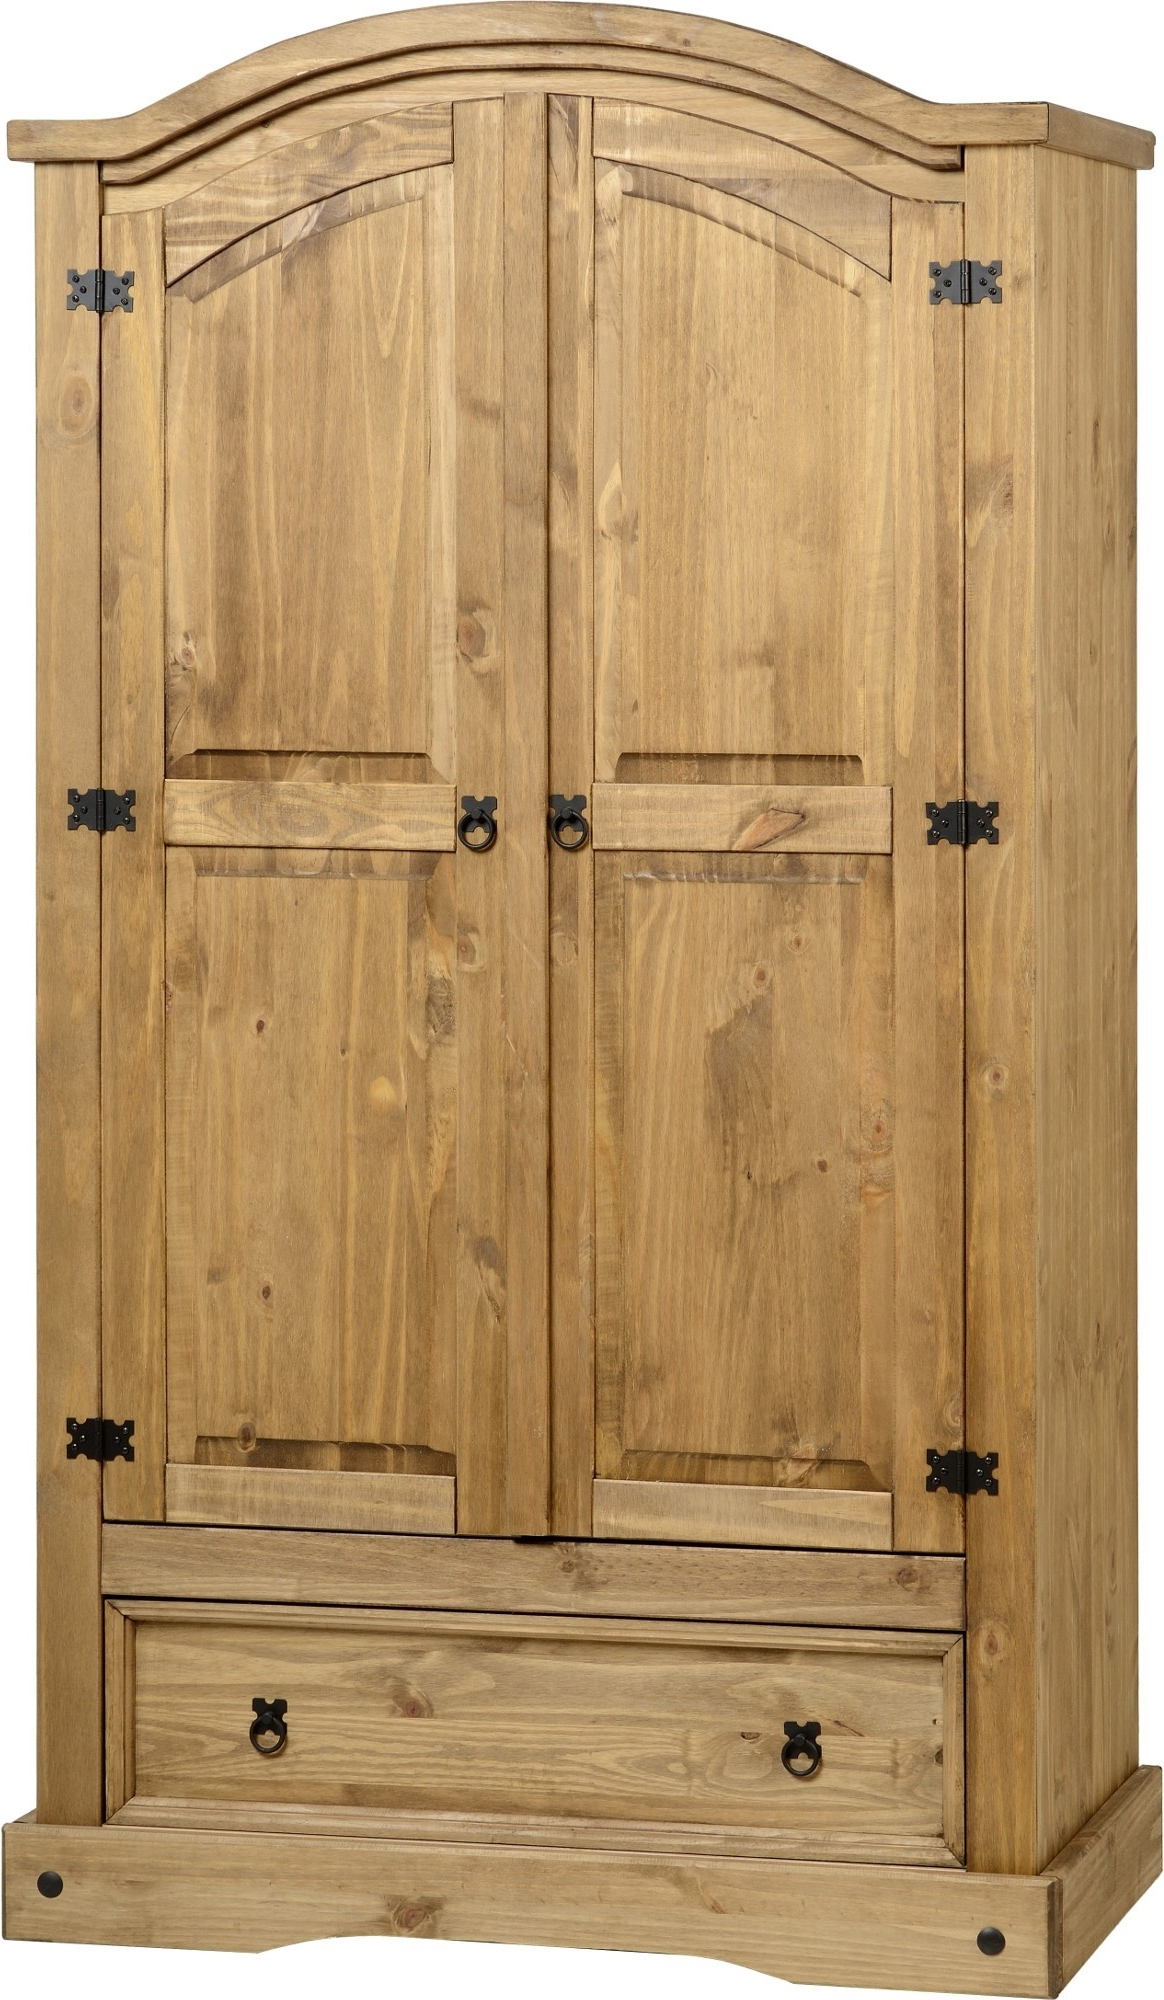 Corona 3 Door Wardrobes Pertaining To Most Recent Corona Pine 2 Door Wardrobe With Drawer – Default Store View (View 5 of 15)